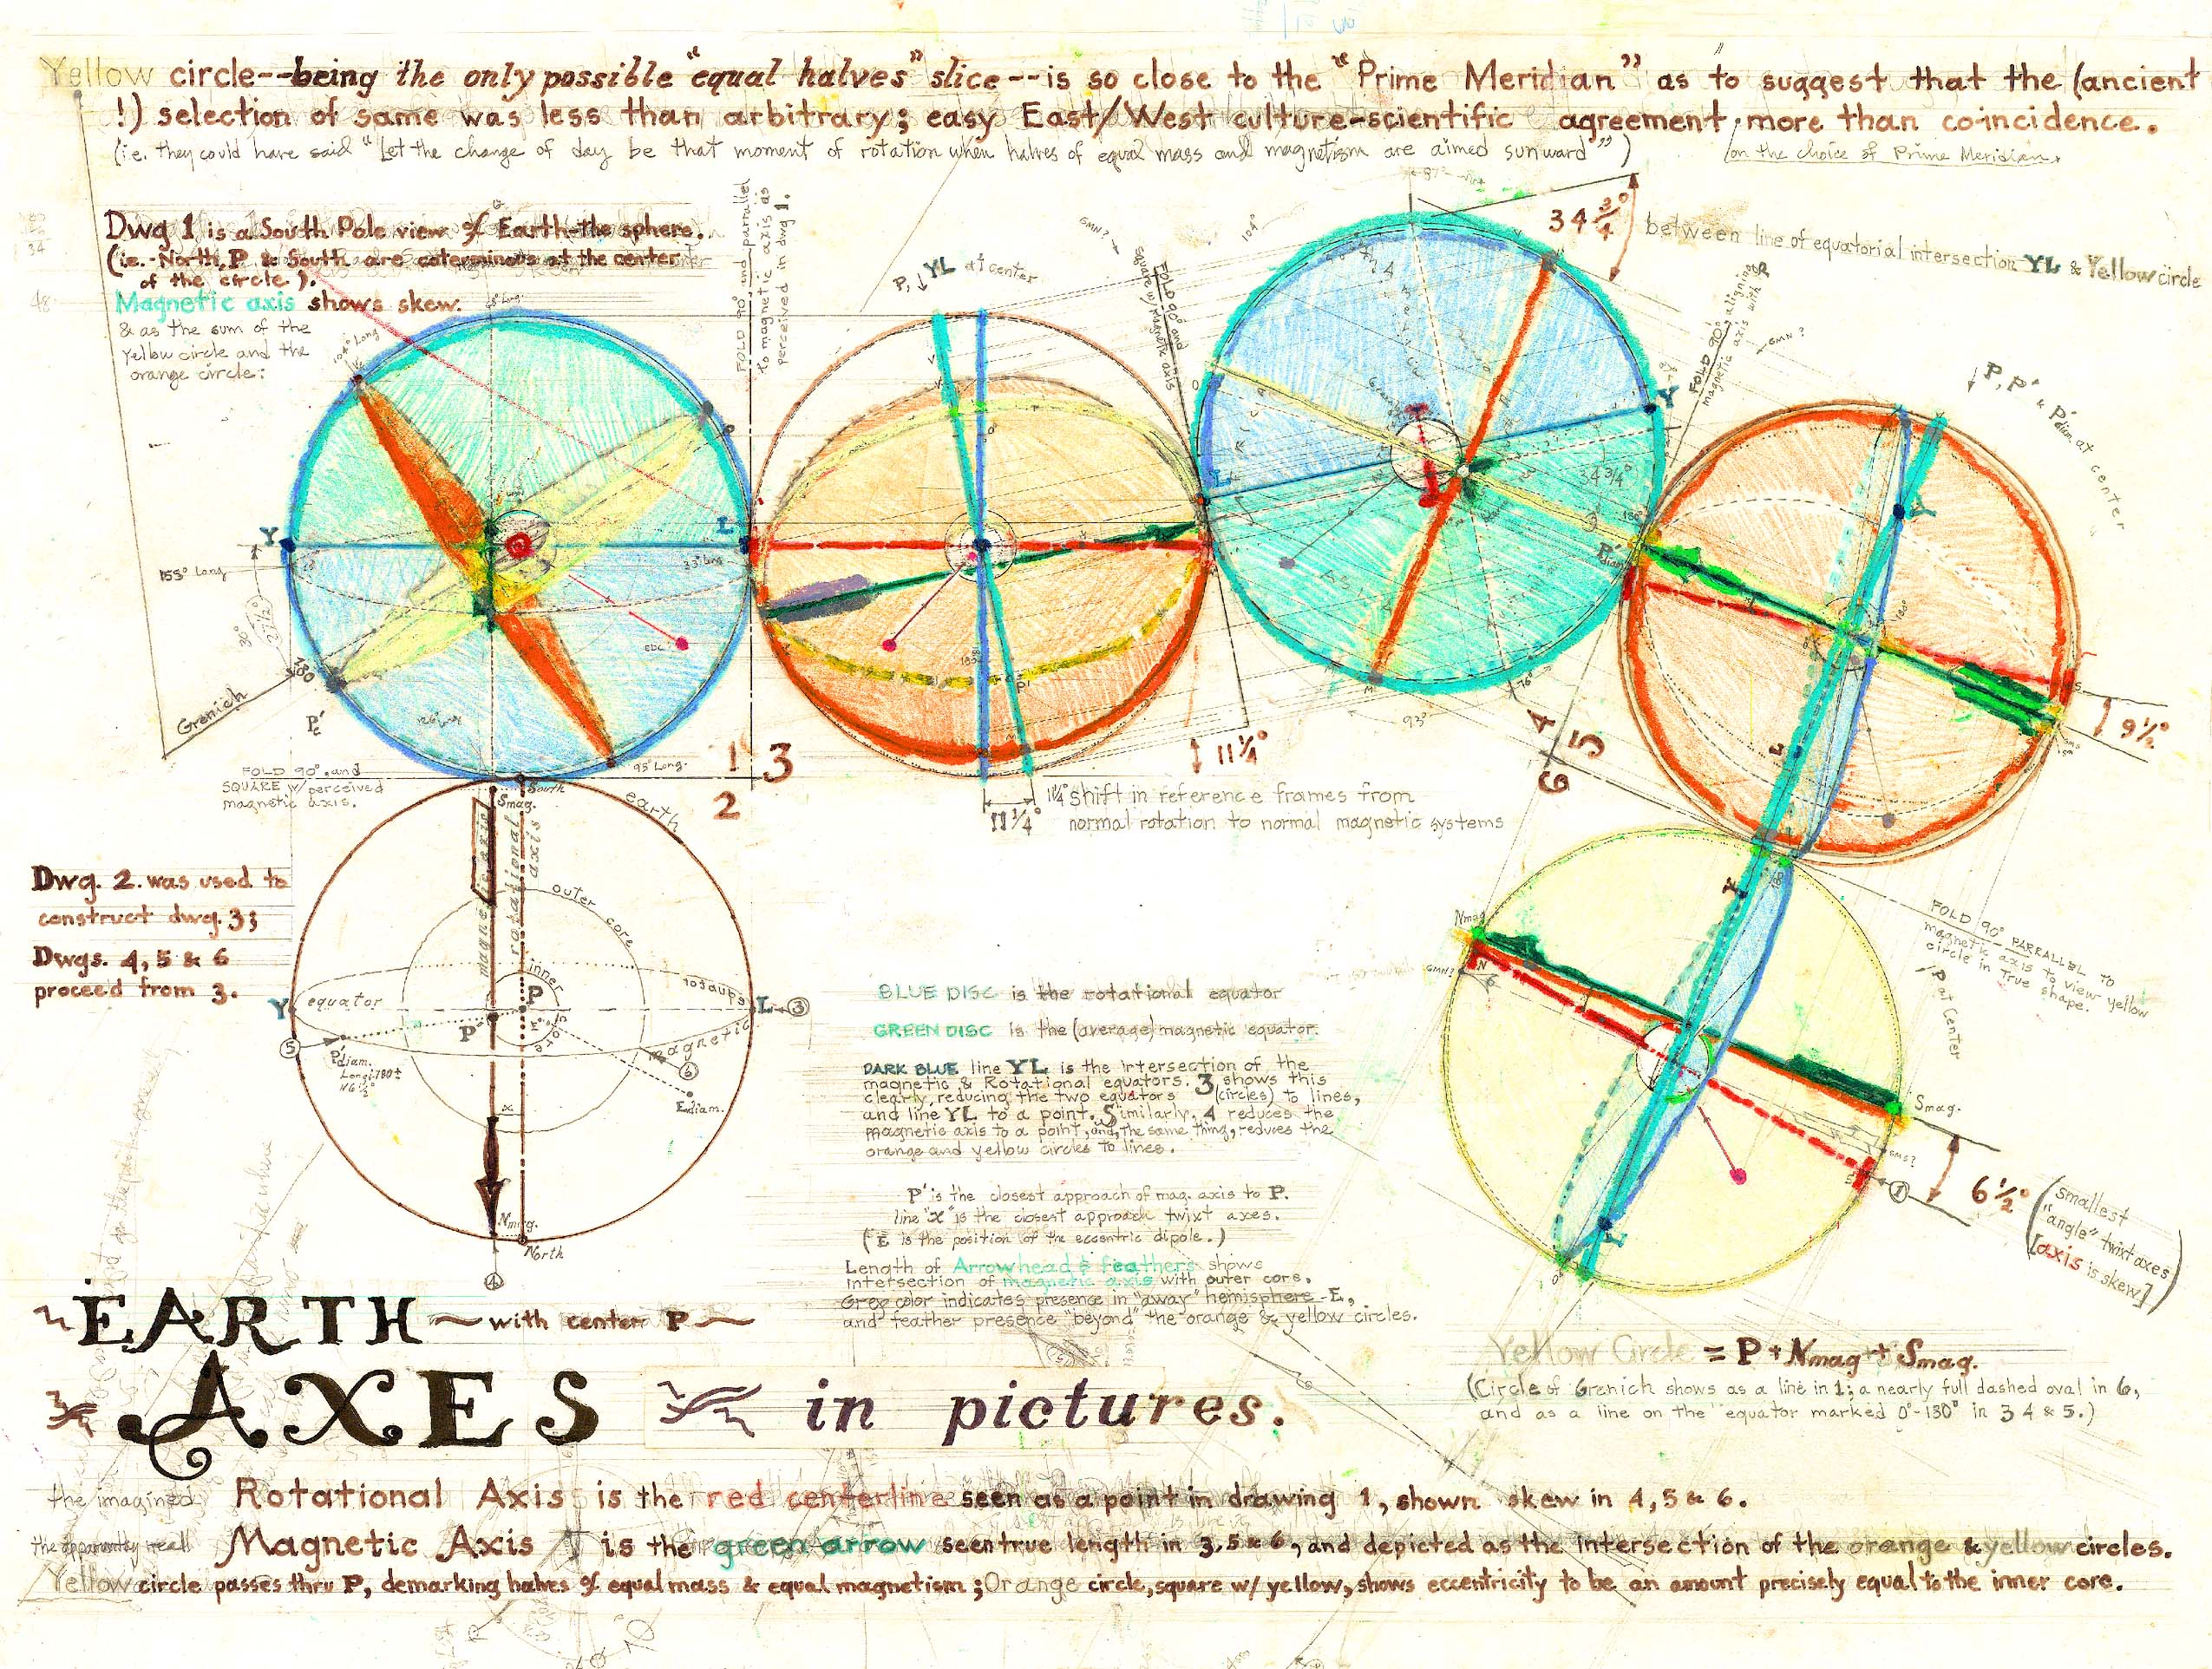 Six Orthographic Views of Earth's Axes